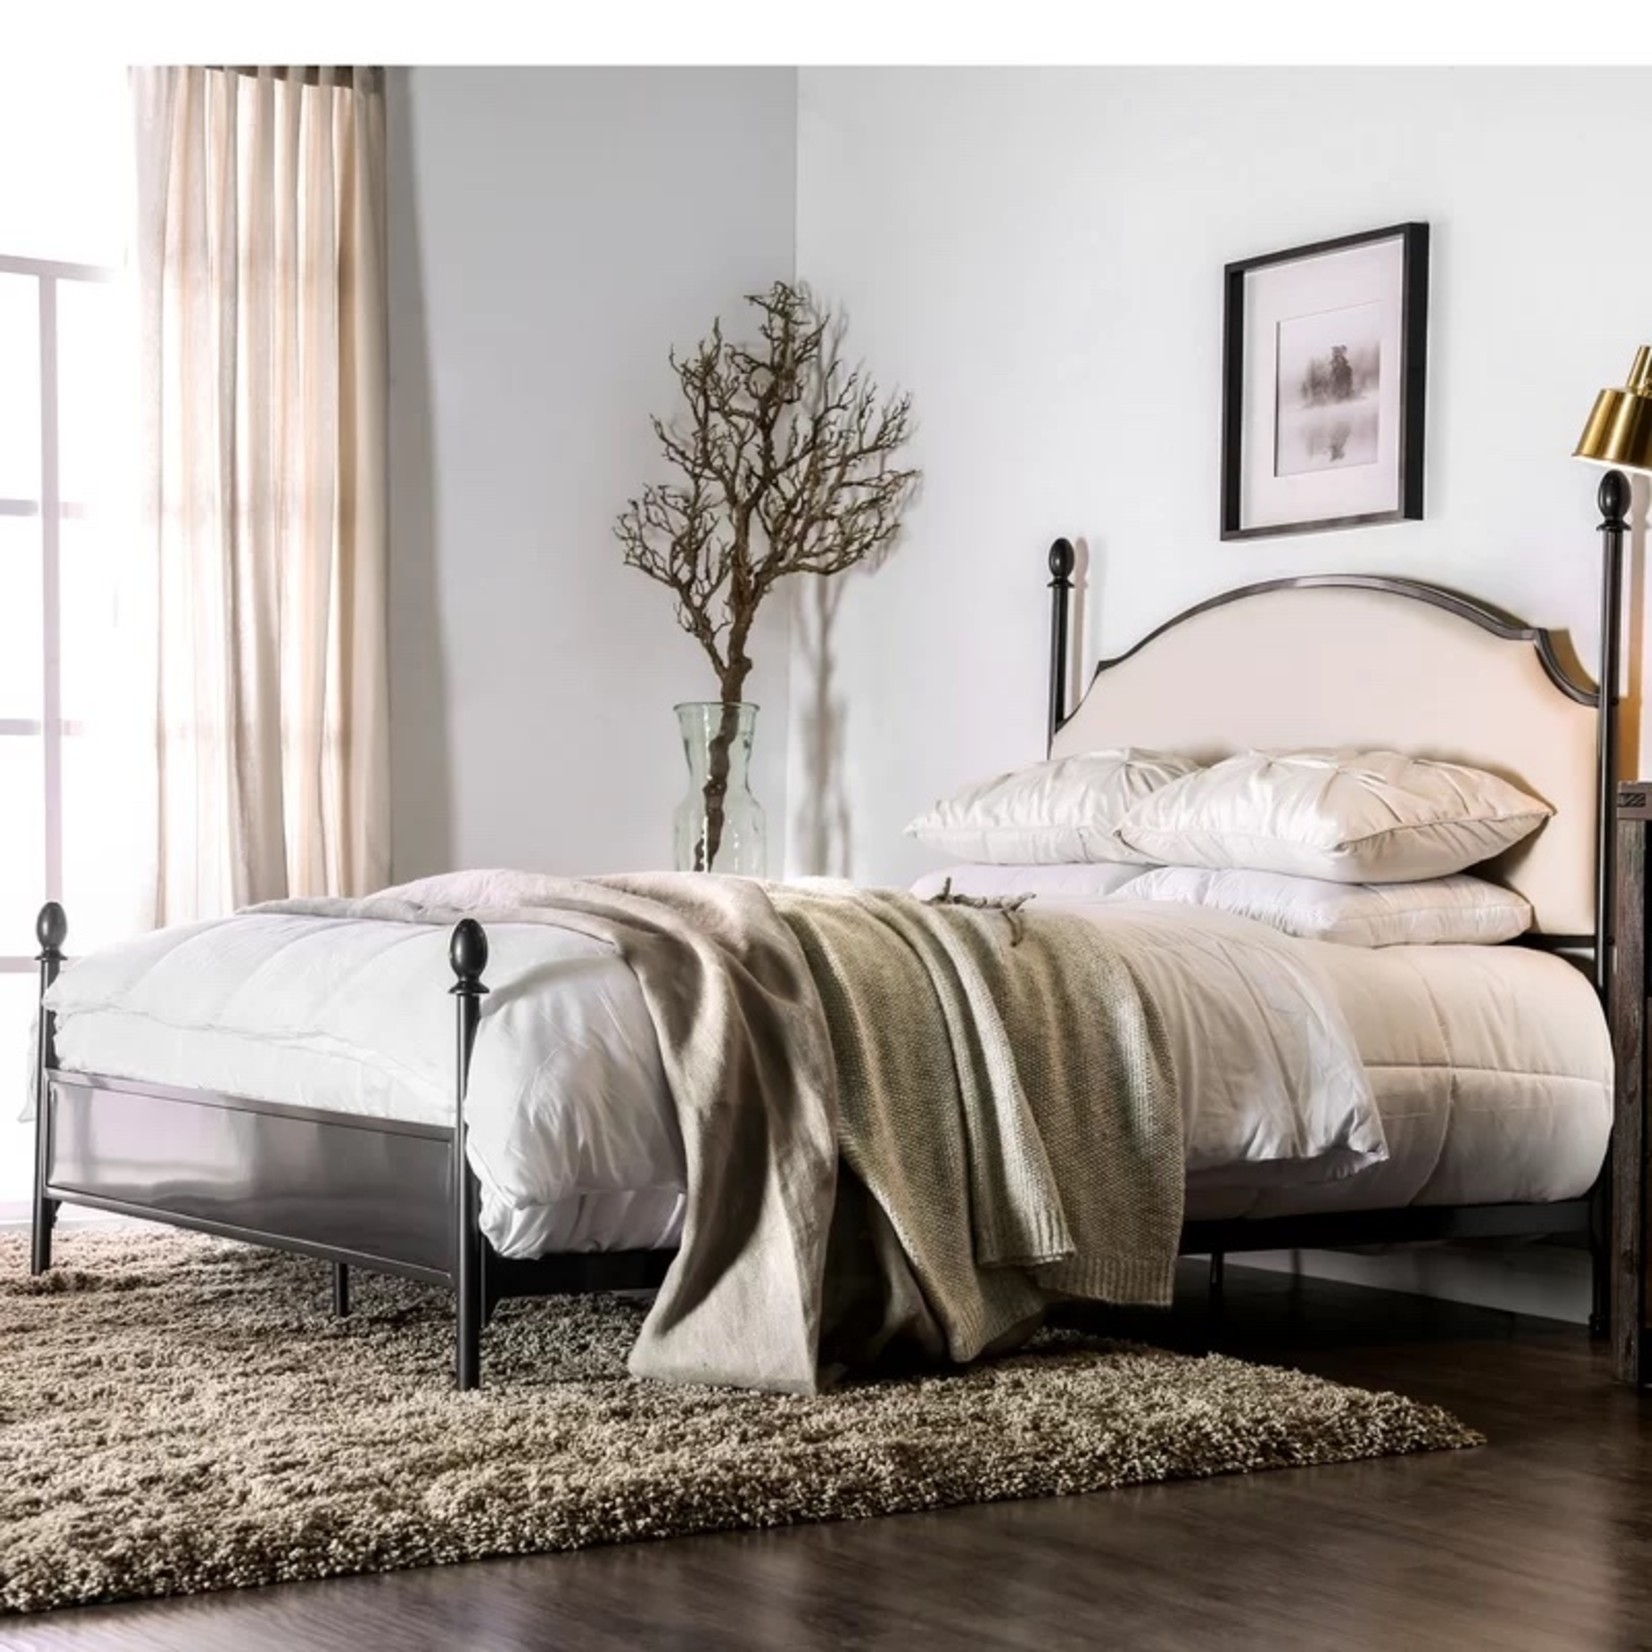 *Cali King - Aafiyah Upholstered Four Poster Bed